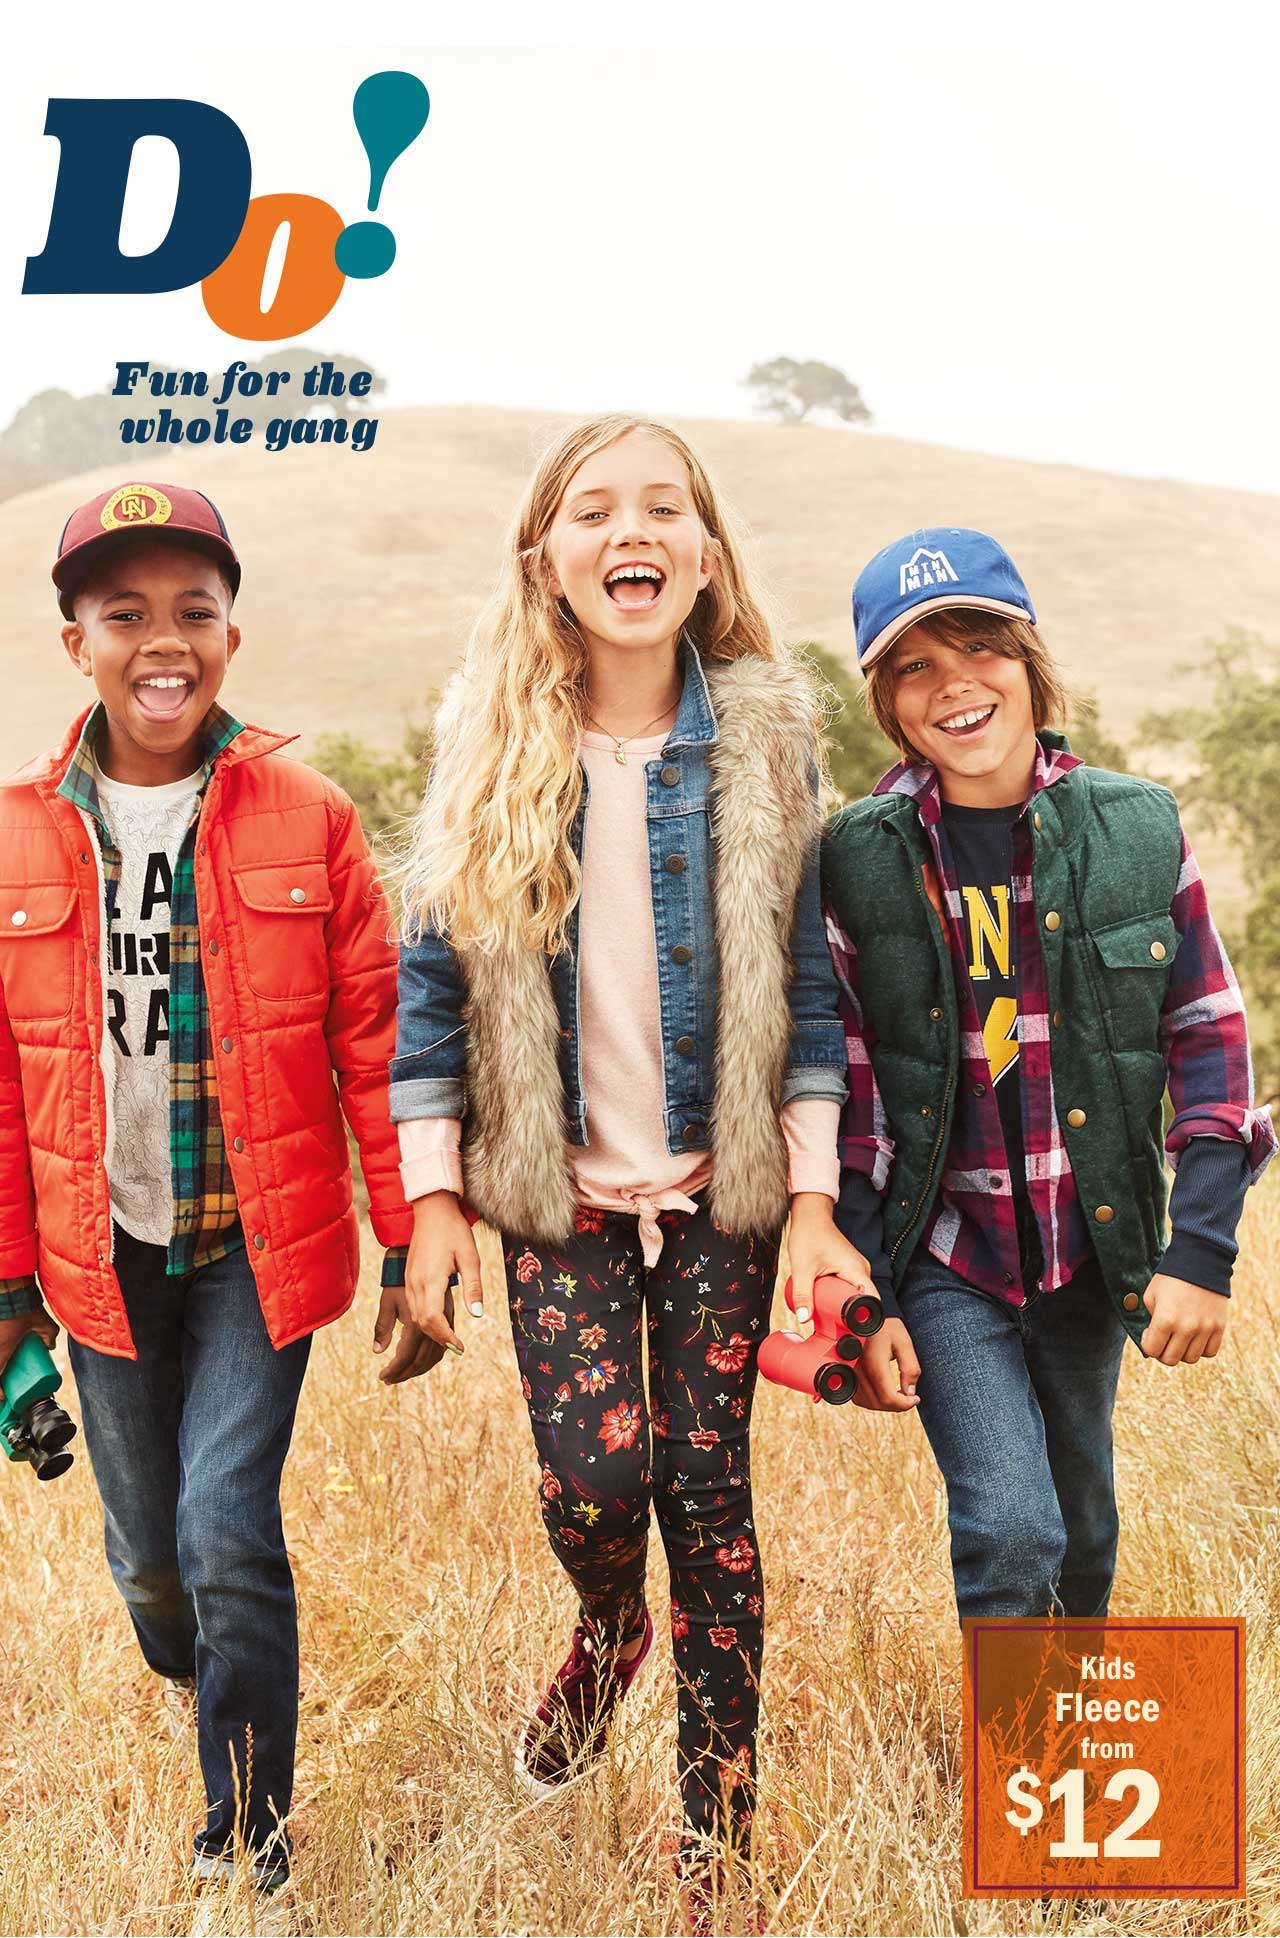 Do! Fun for the whole gang | Kids Fleece from $12